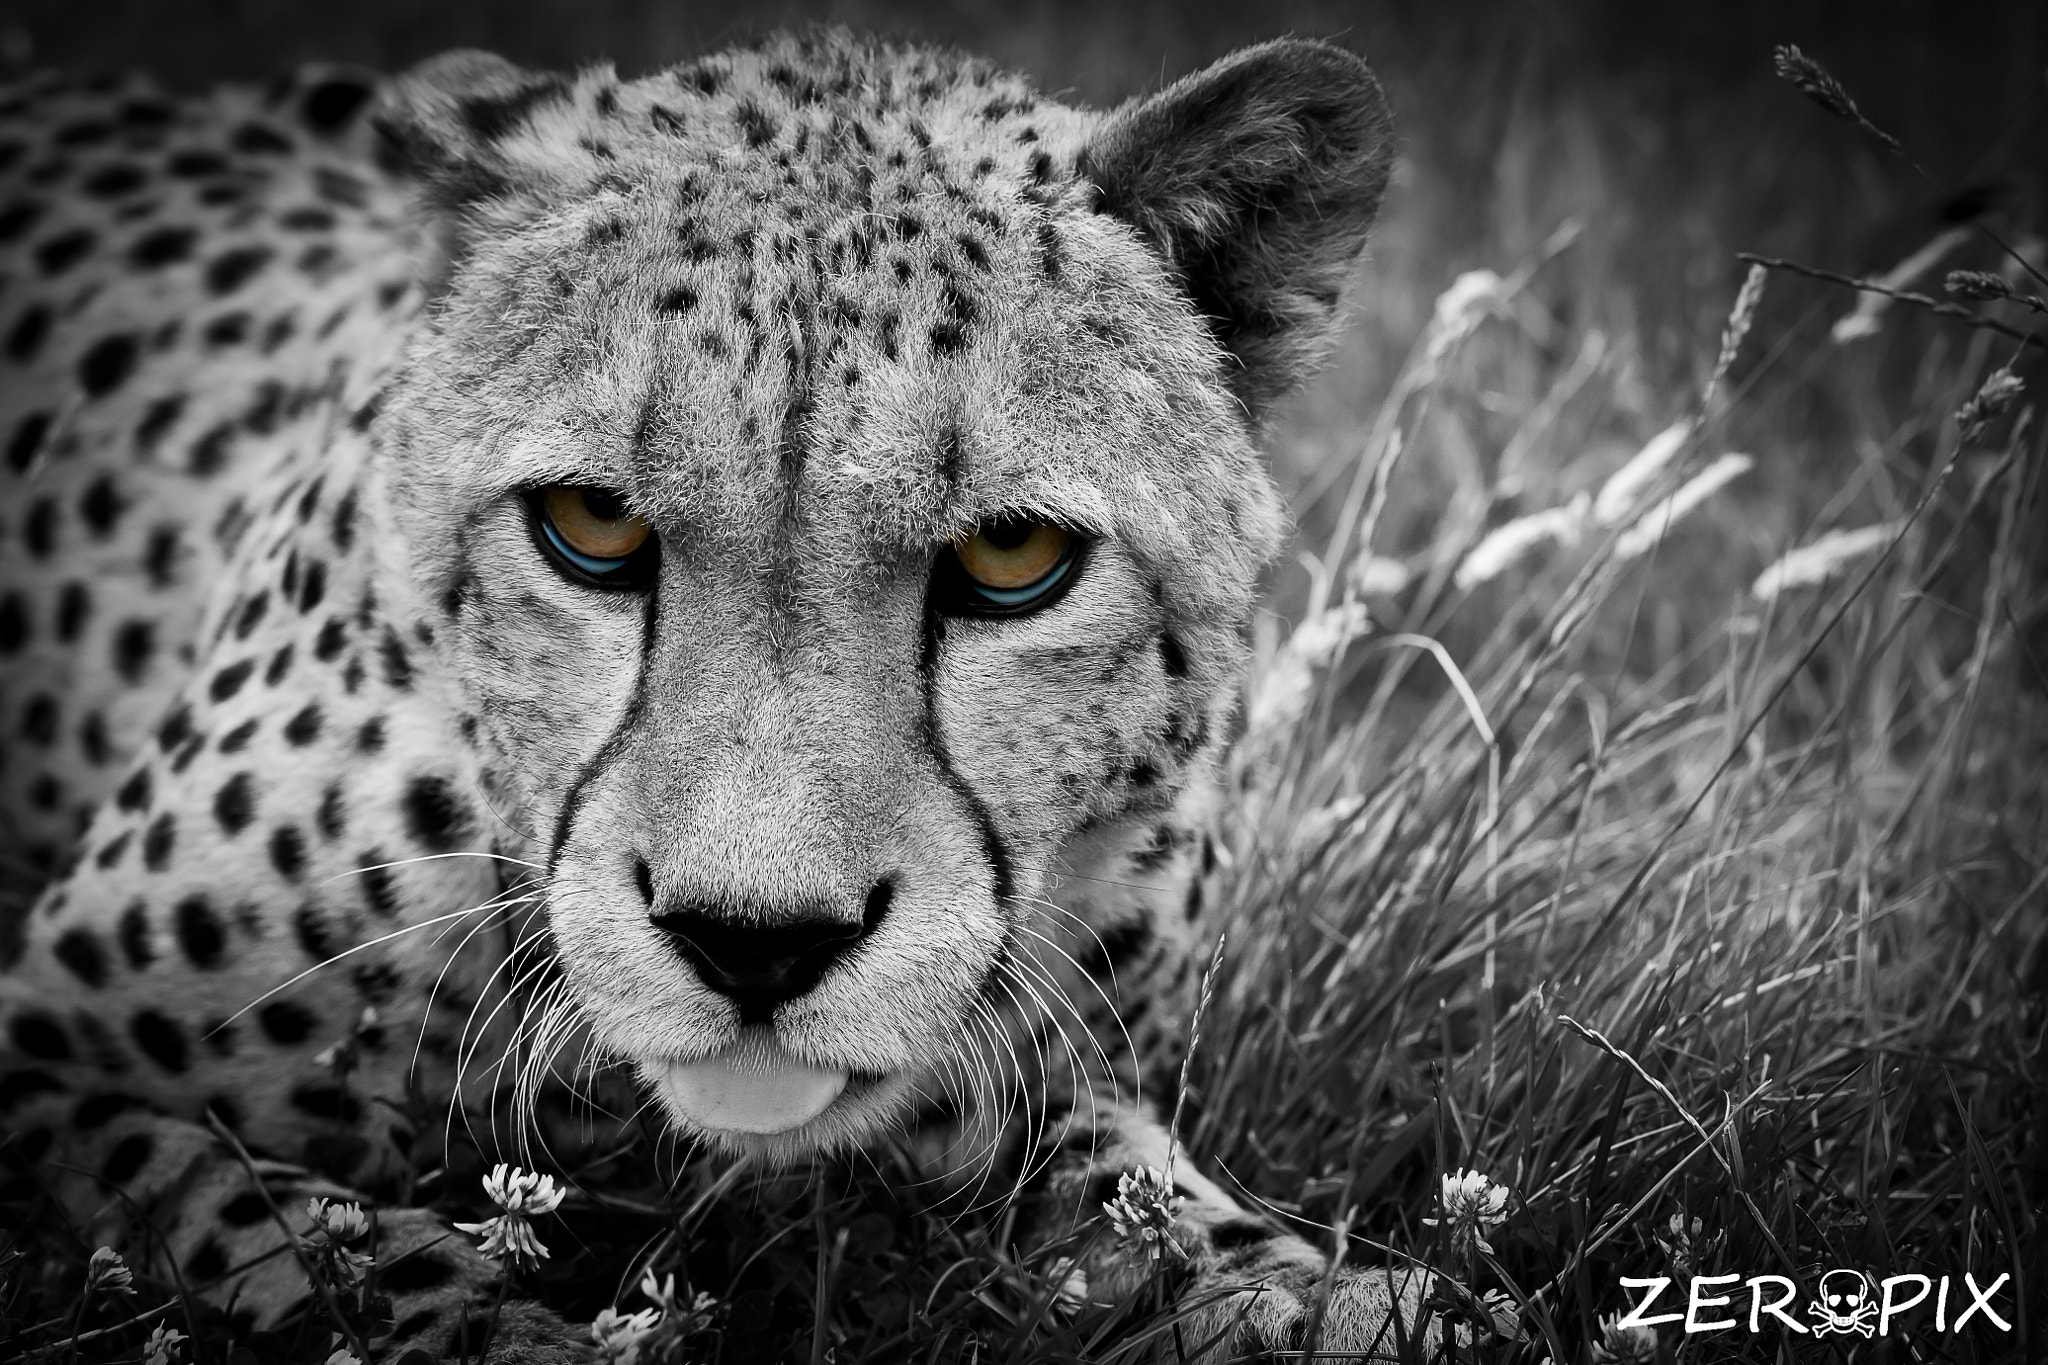 Photograph Dont poke your tounge out at me by ZeroPix Photography on 500px